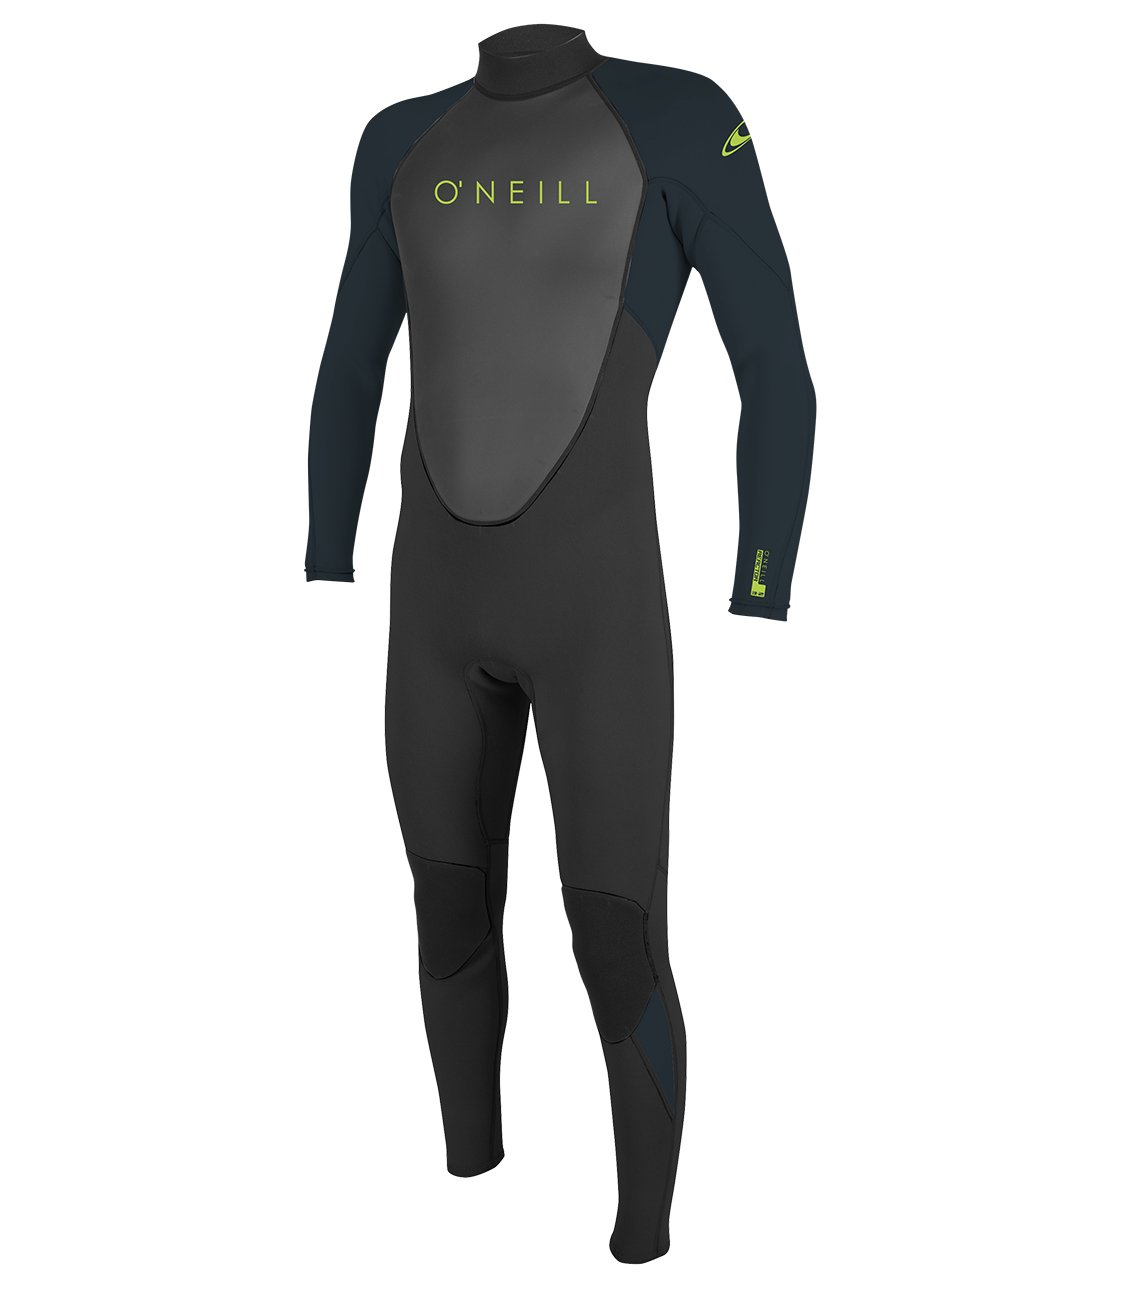 O'Neill Youth Reactor-2 3/2mm Back Zip Full Wetsuit, Black/Slate, 14 by O'Neill Wetsuits